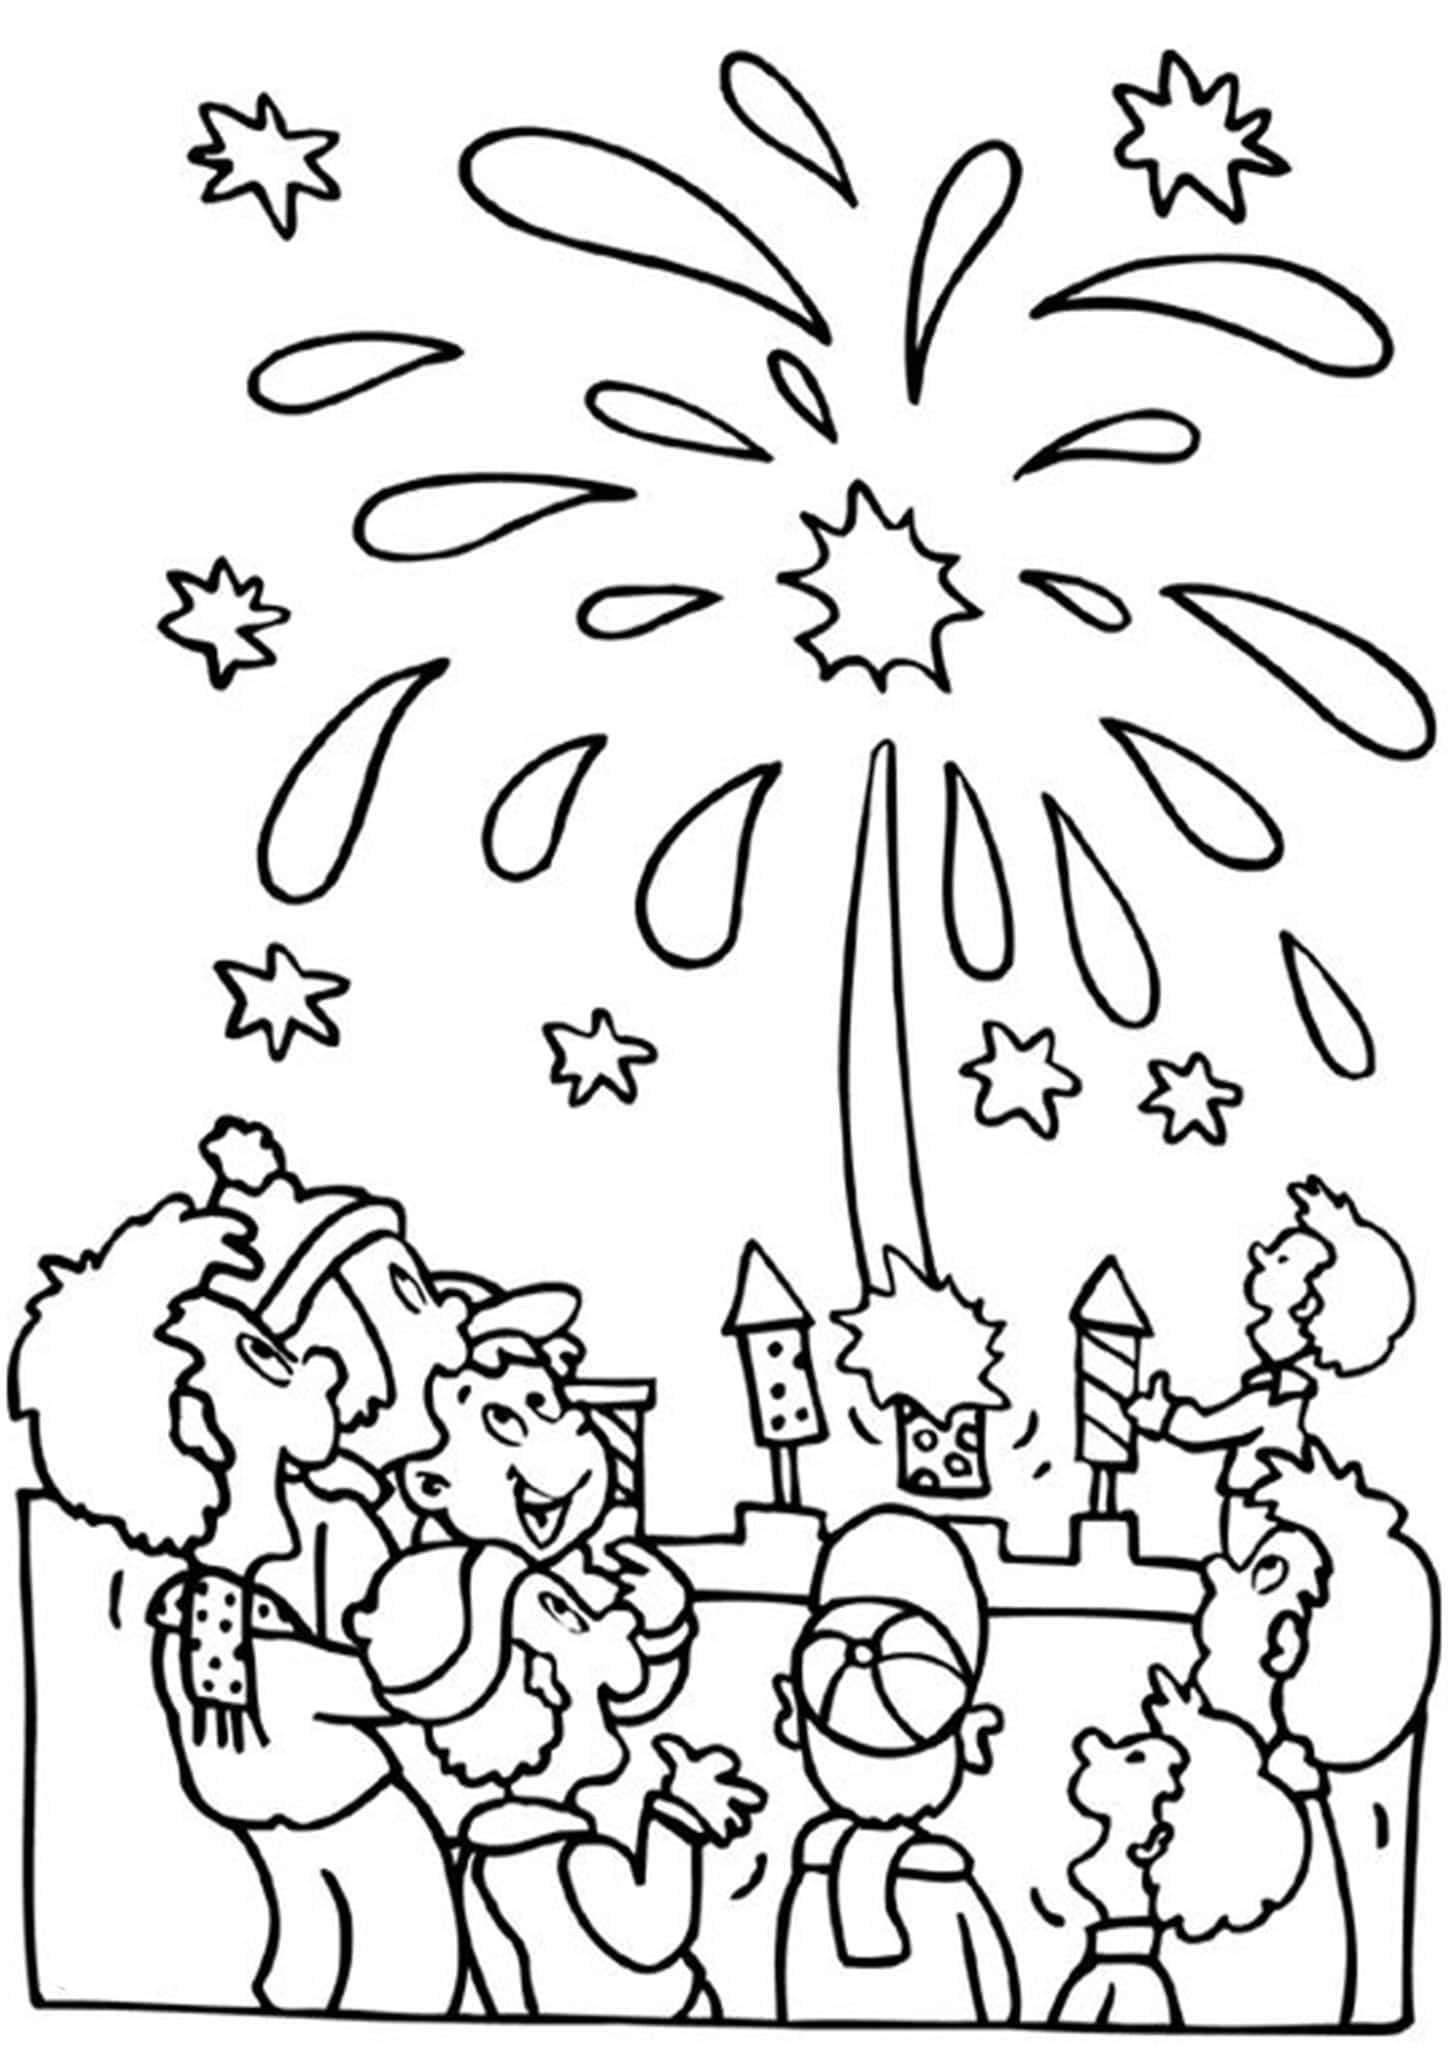 Free Easy To Print 4th Of July Coloring Pages Coloring Pages Valentines Day Coloring Page Winter Art Lesson